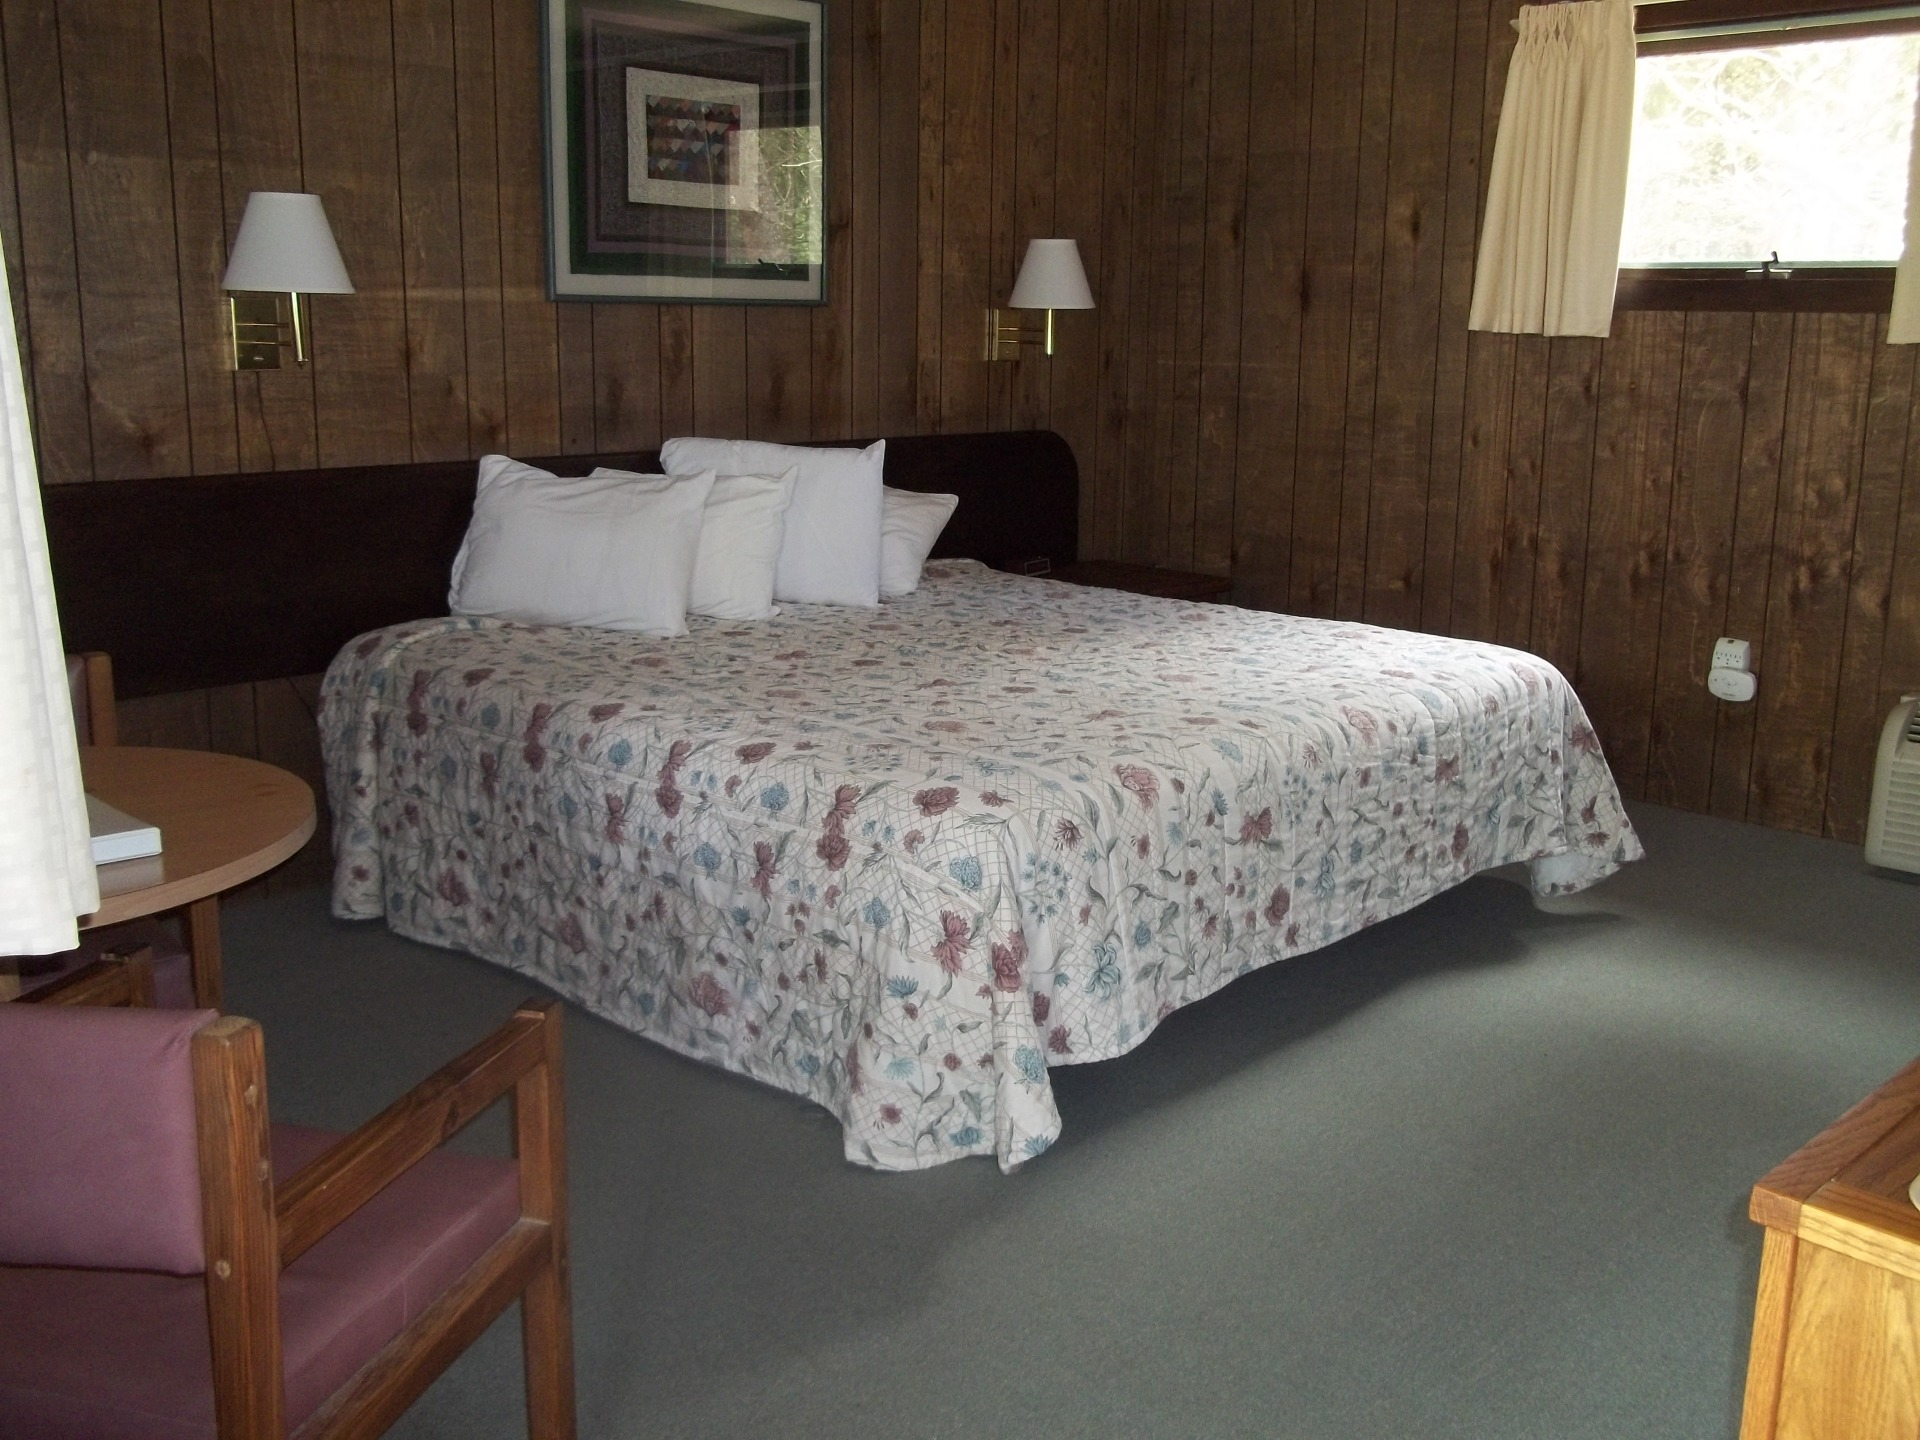 Motel Room with King Bed